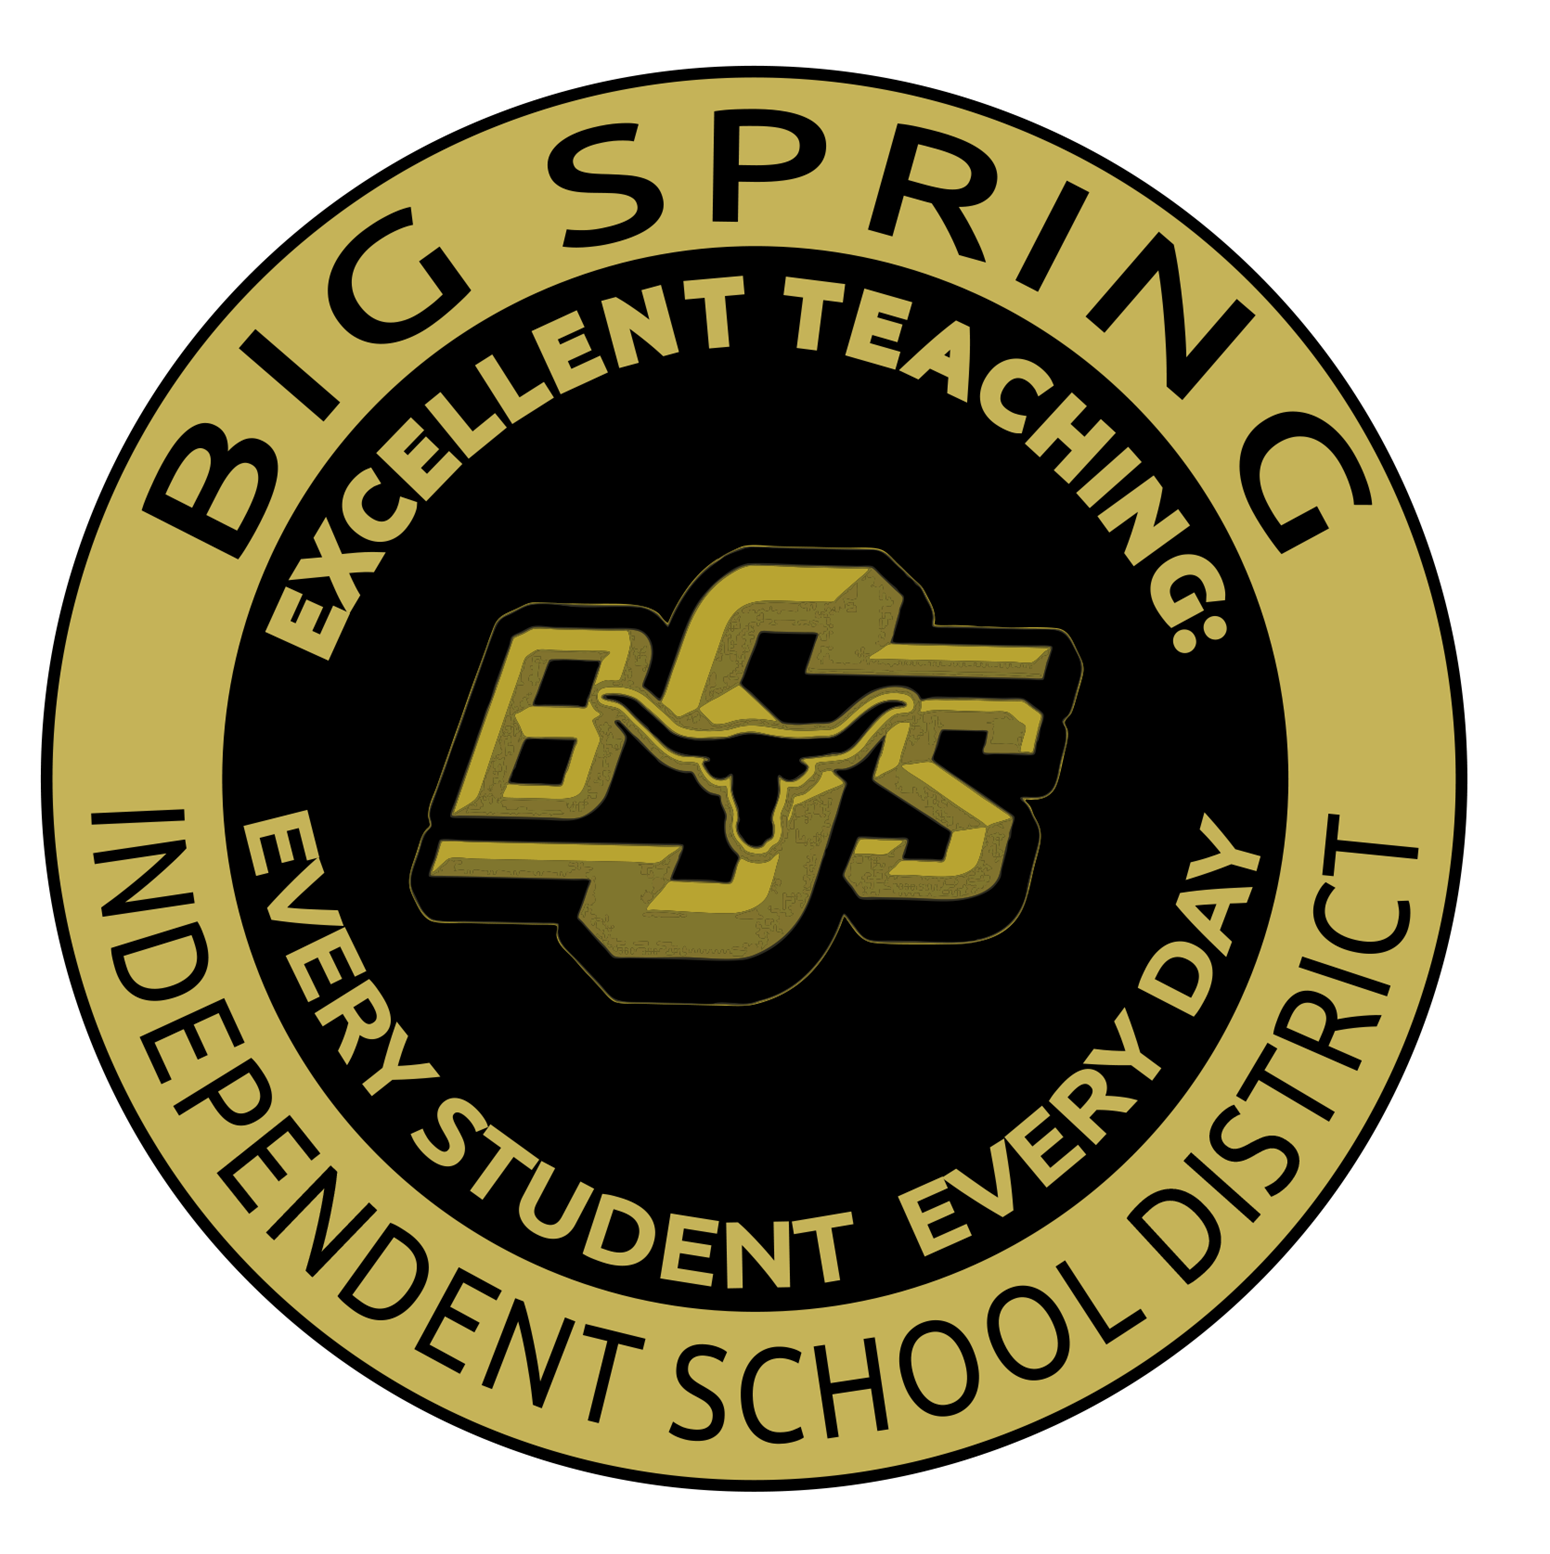 BSISD Logo - Excellent Teaching, Every Student, Every Day